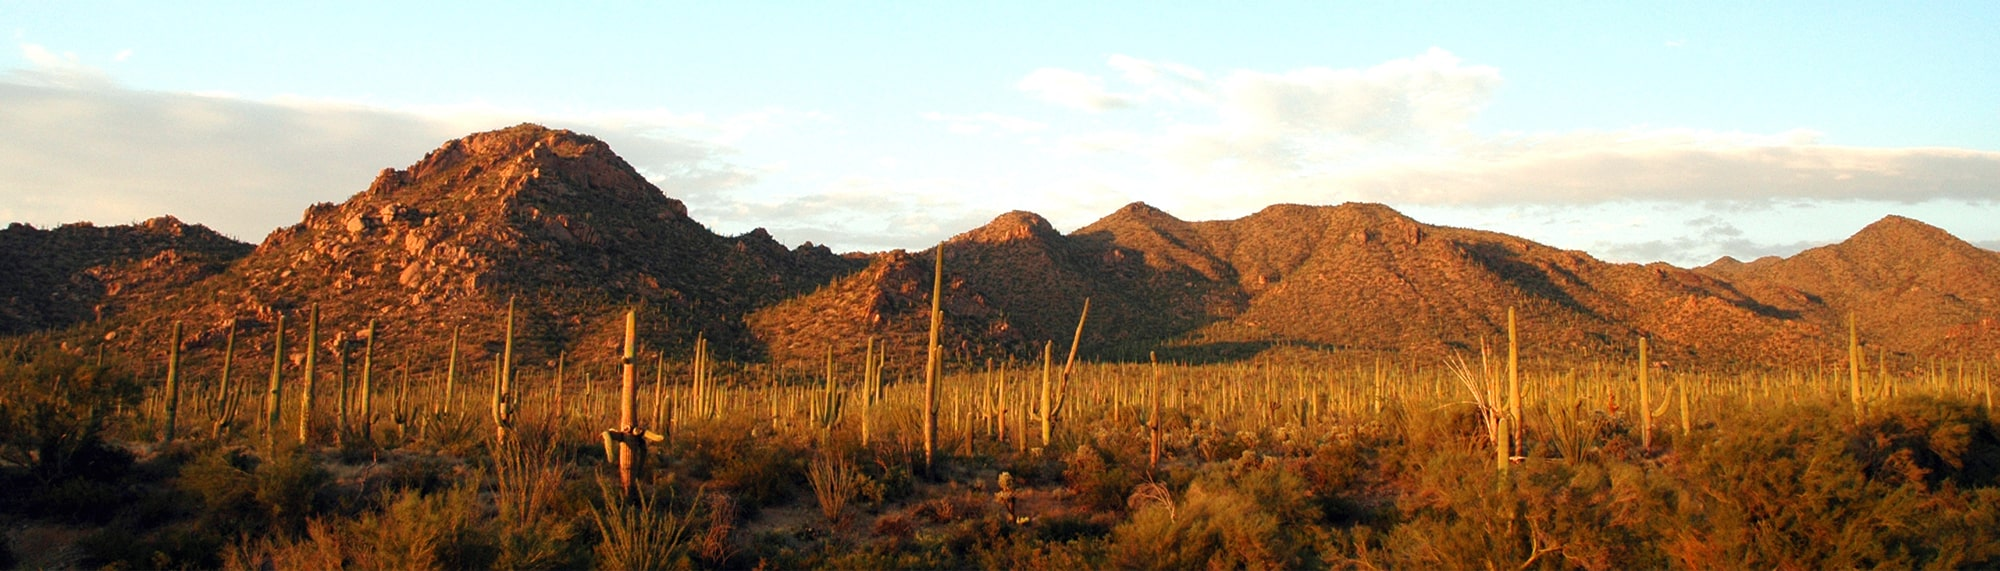 Arizona Mountains at Sunset